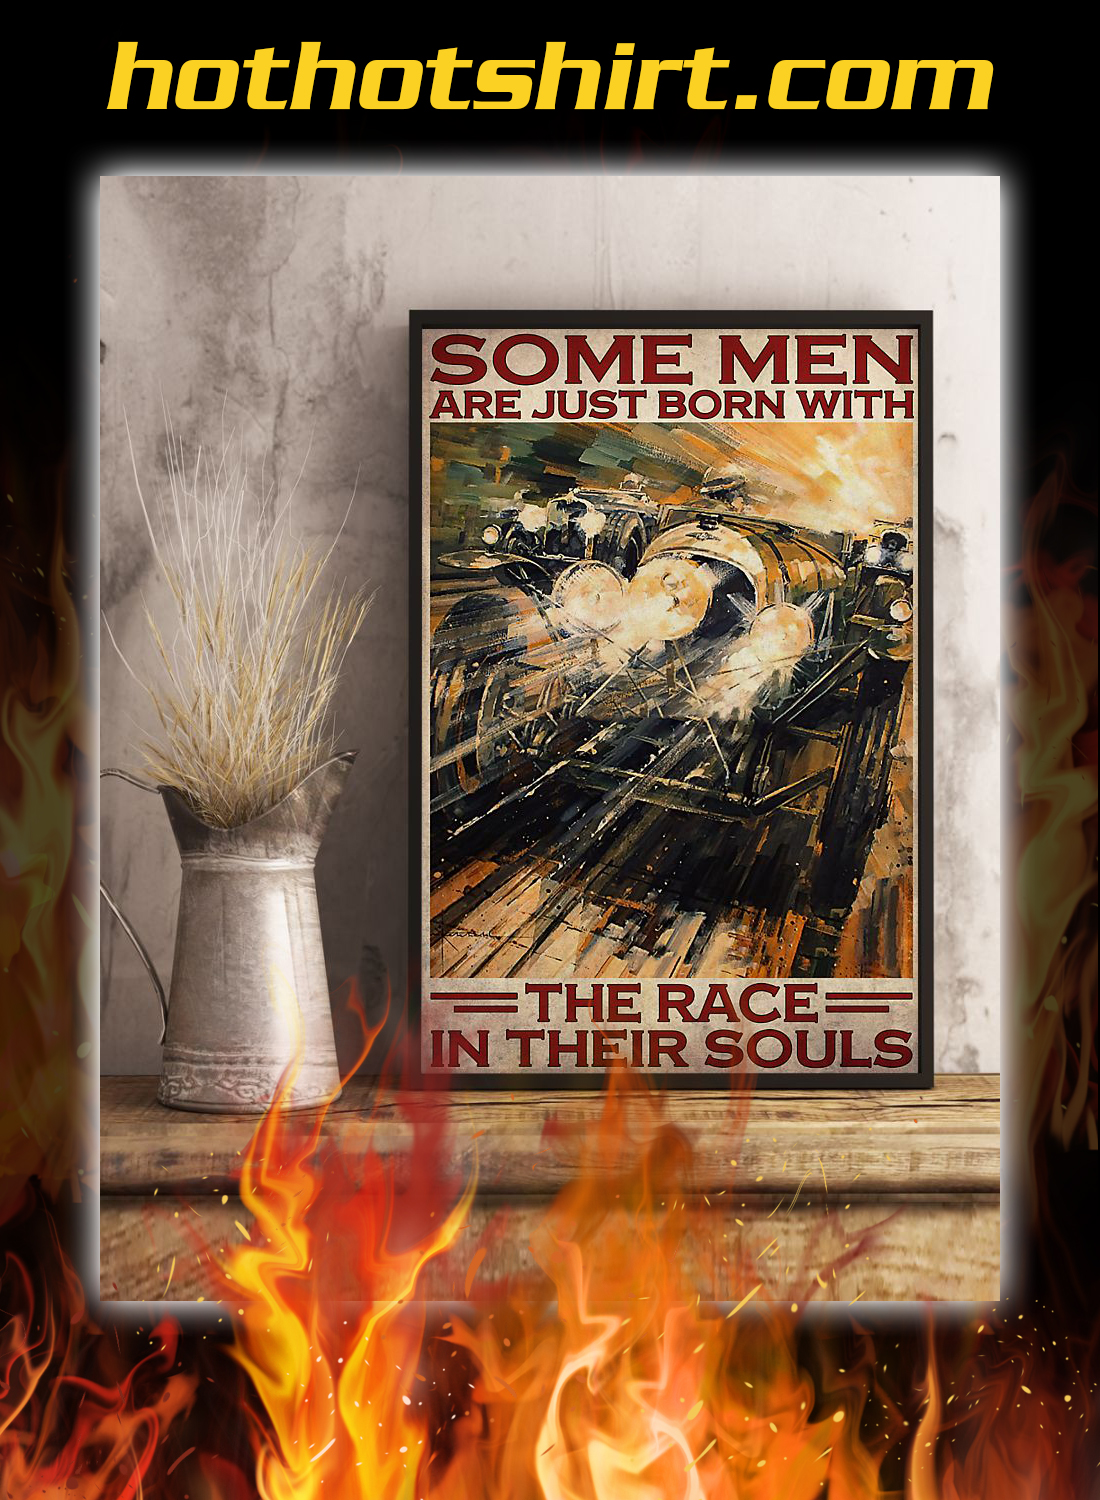 Some men are just born with the race in their souls 3